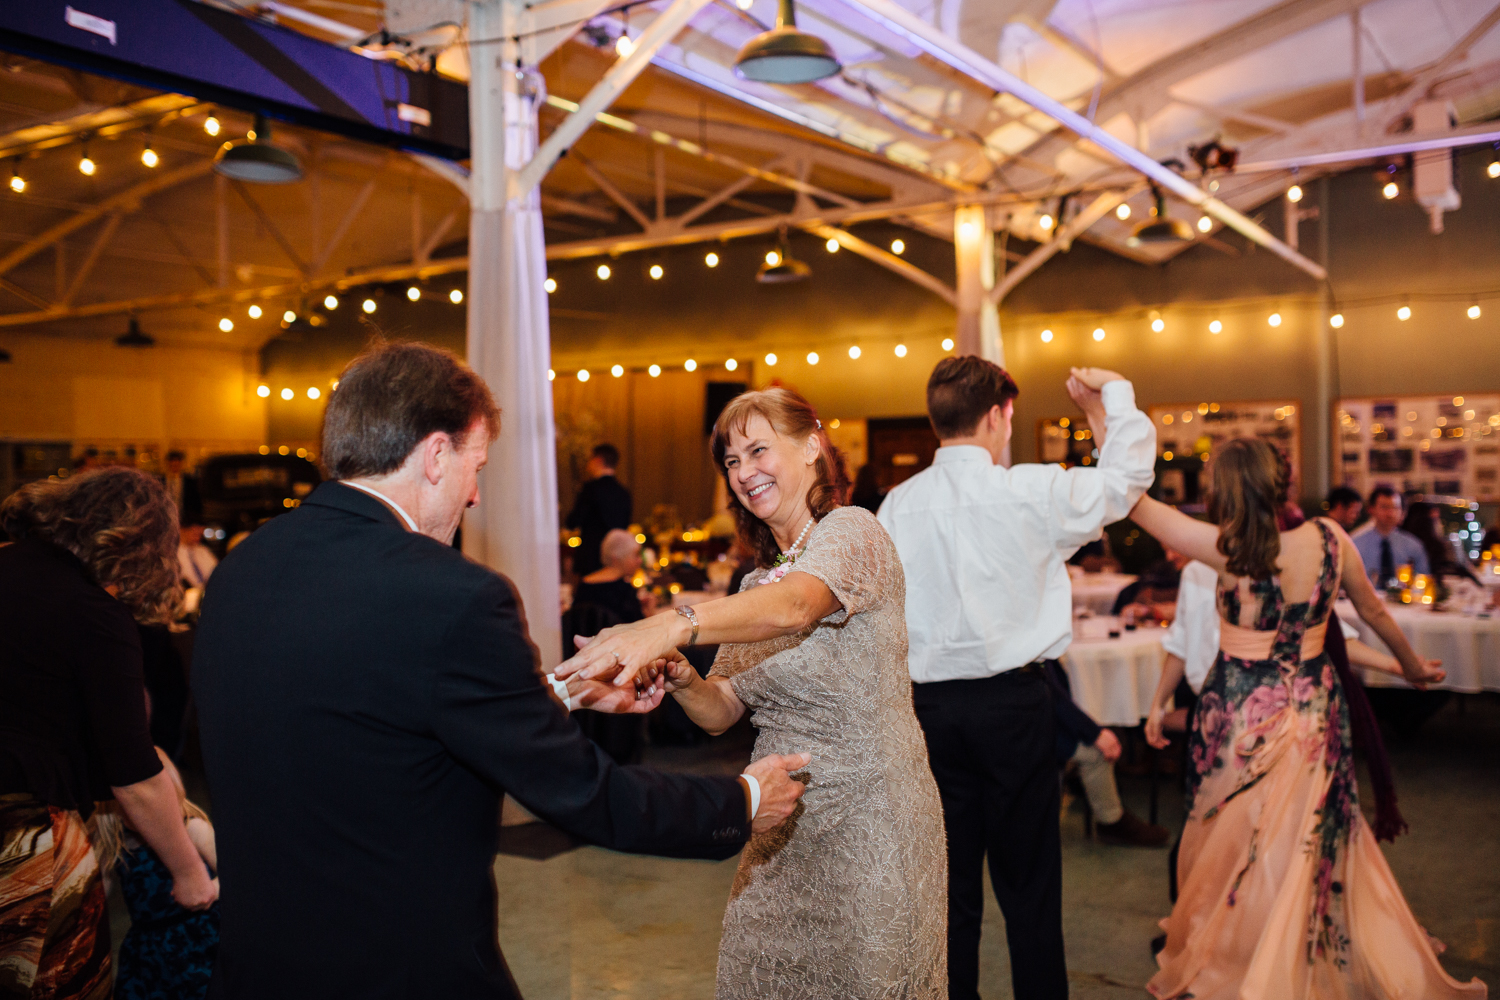 Fun, Intimate Spring Wedding by Corrie Mick Photography-103.jpg